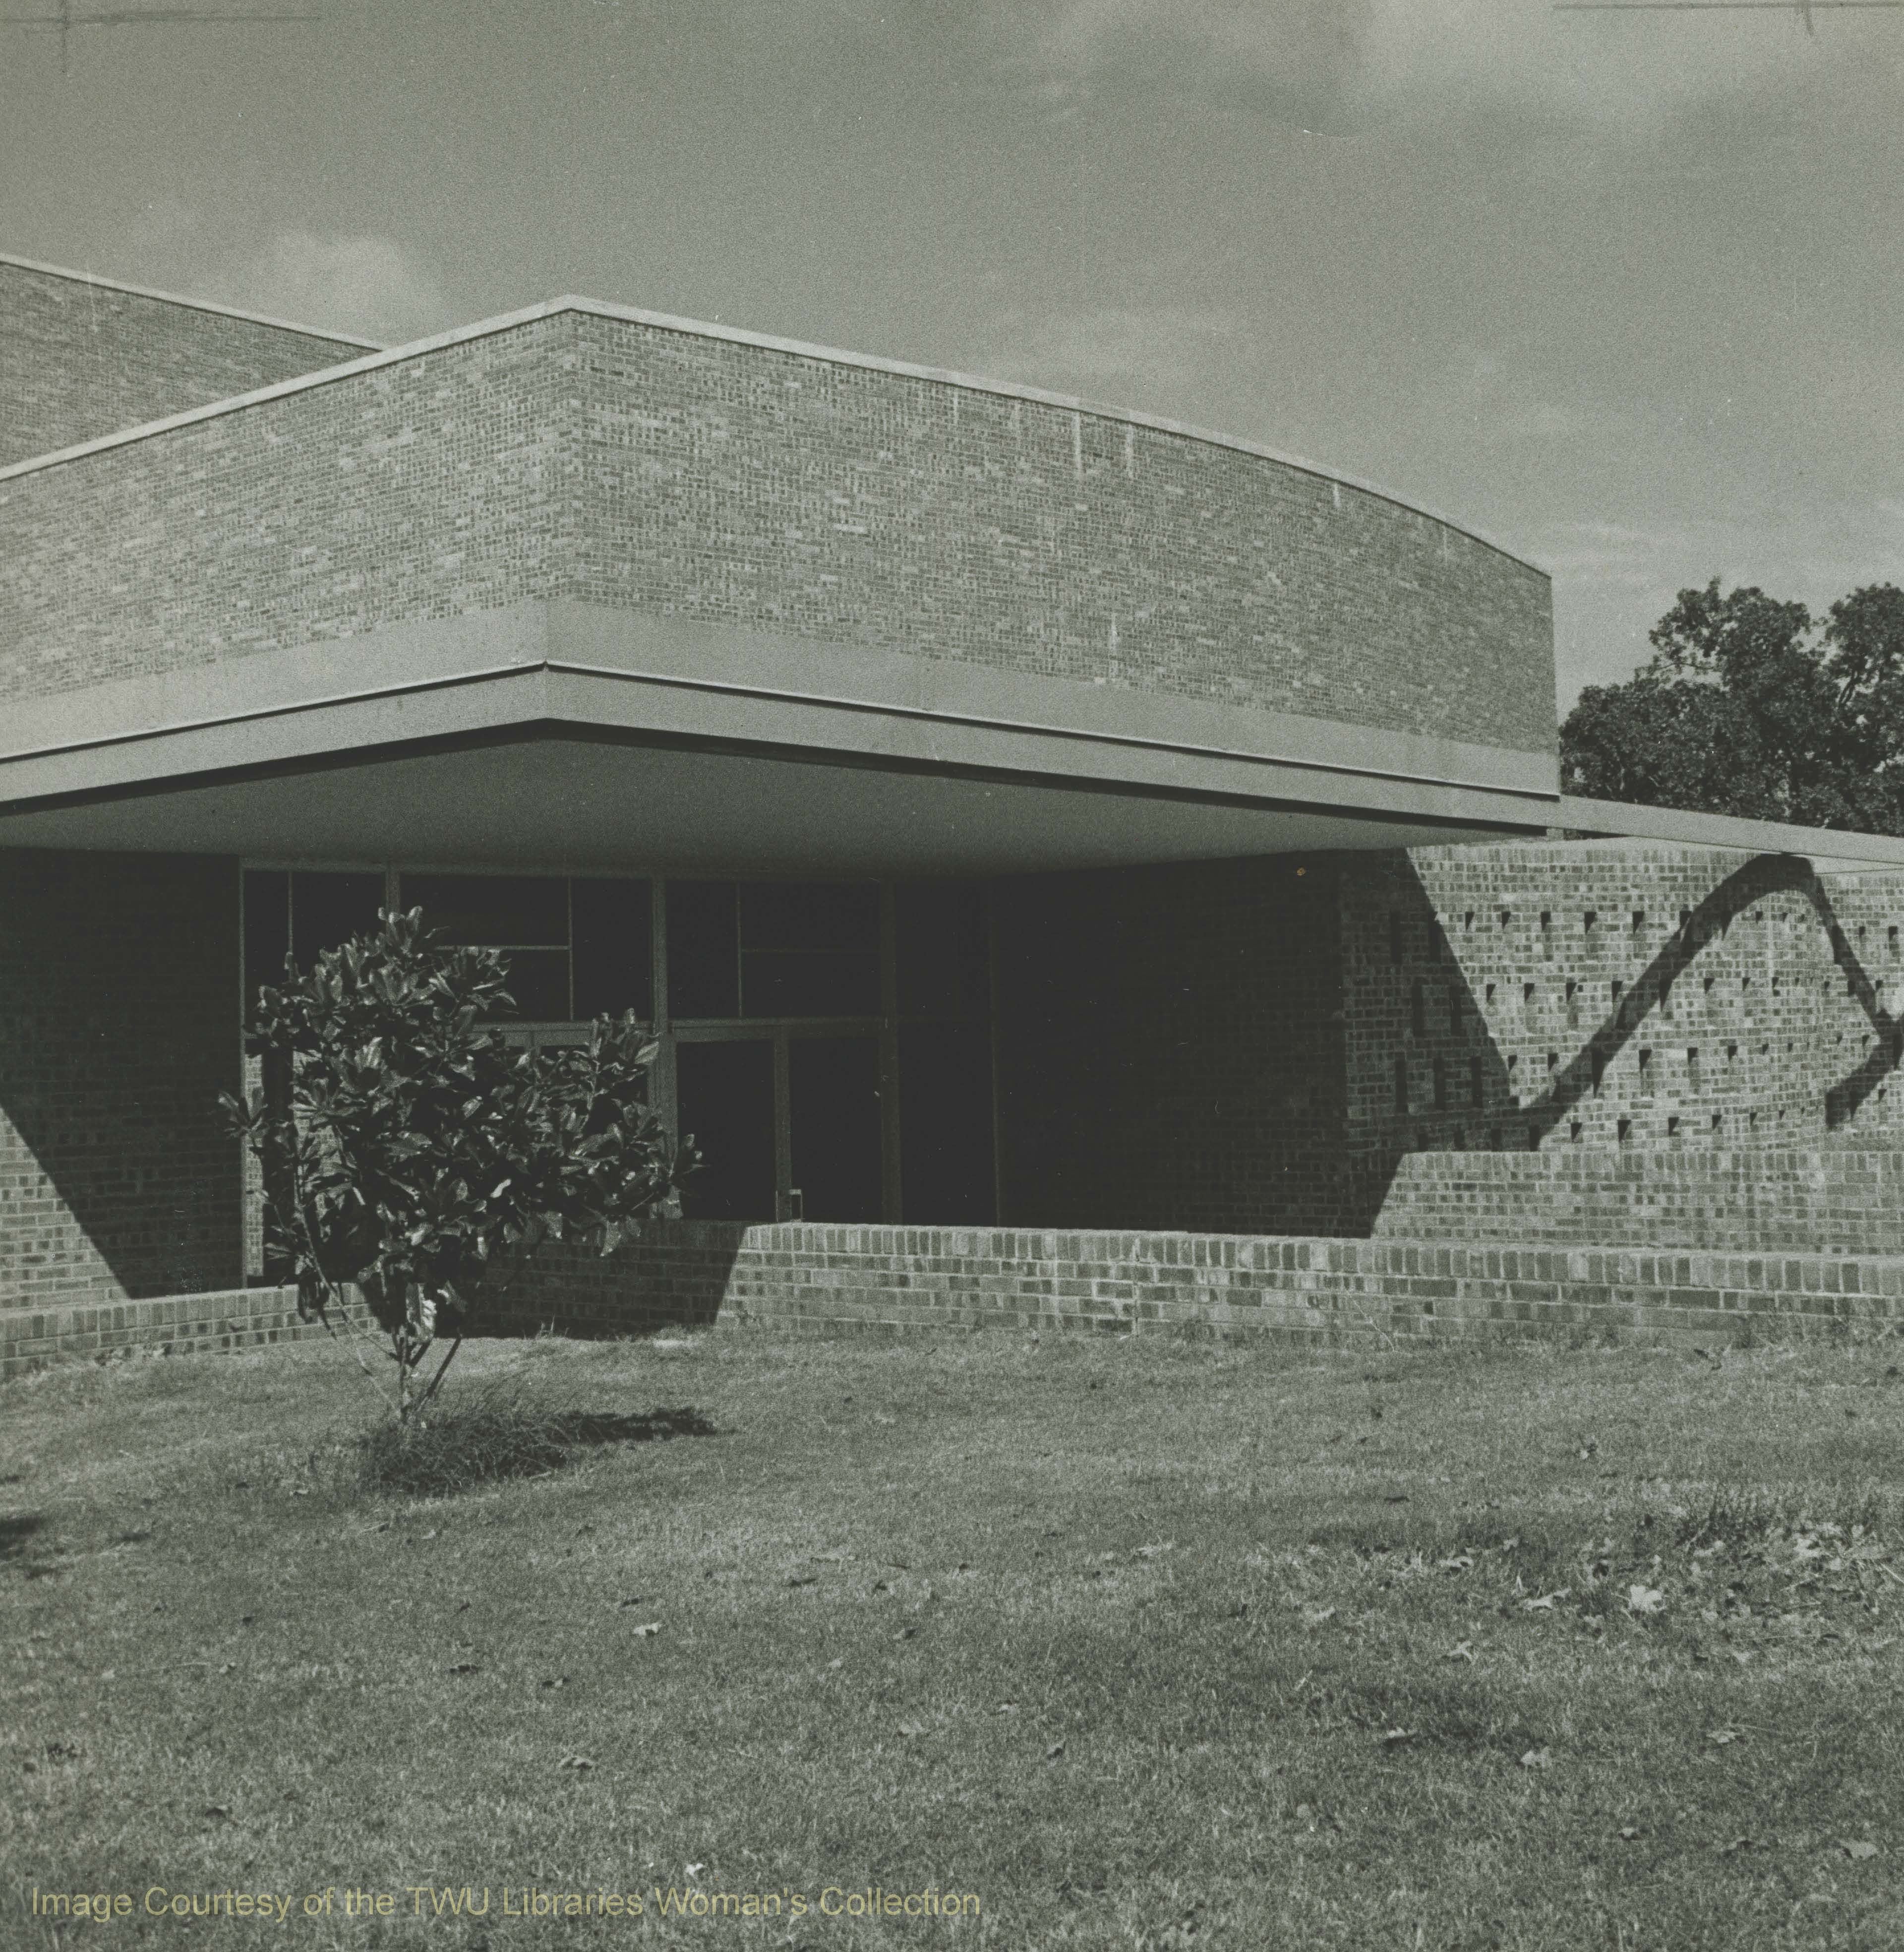 Redbud Auditorium entrance located on Bell Avenue.  -Courtesy of TWU archives